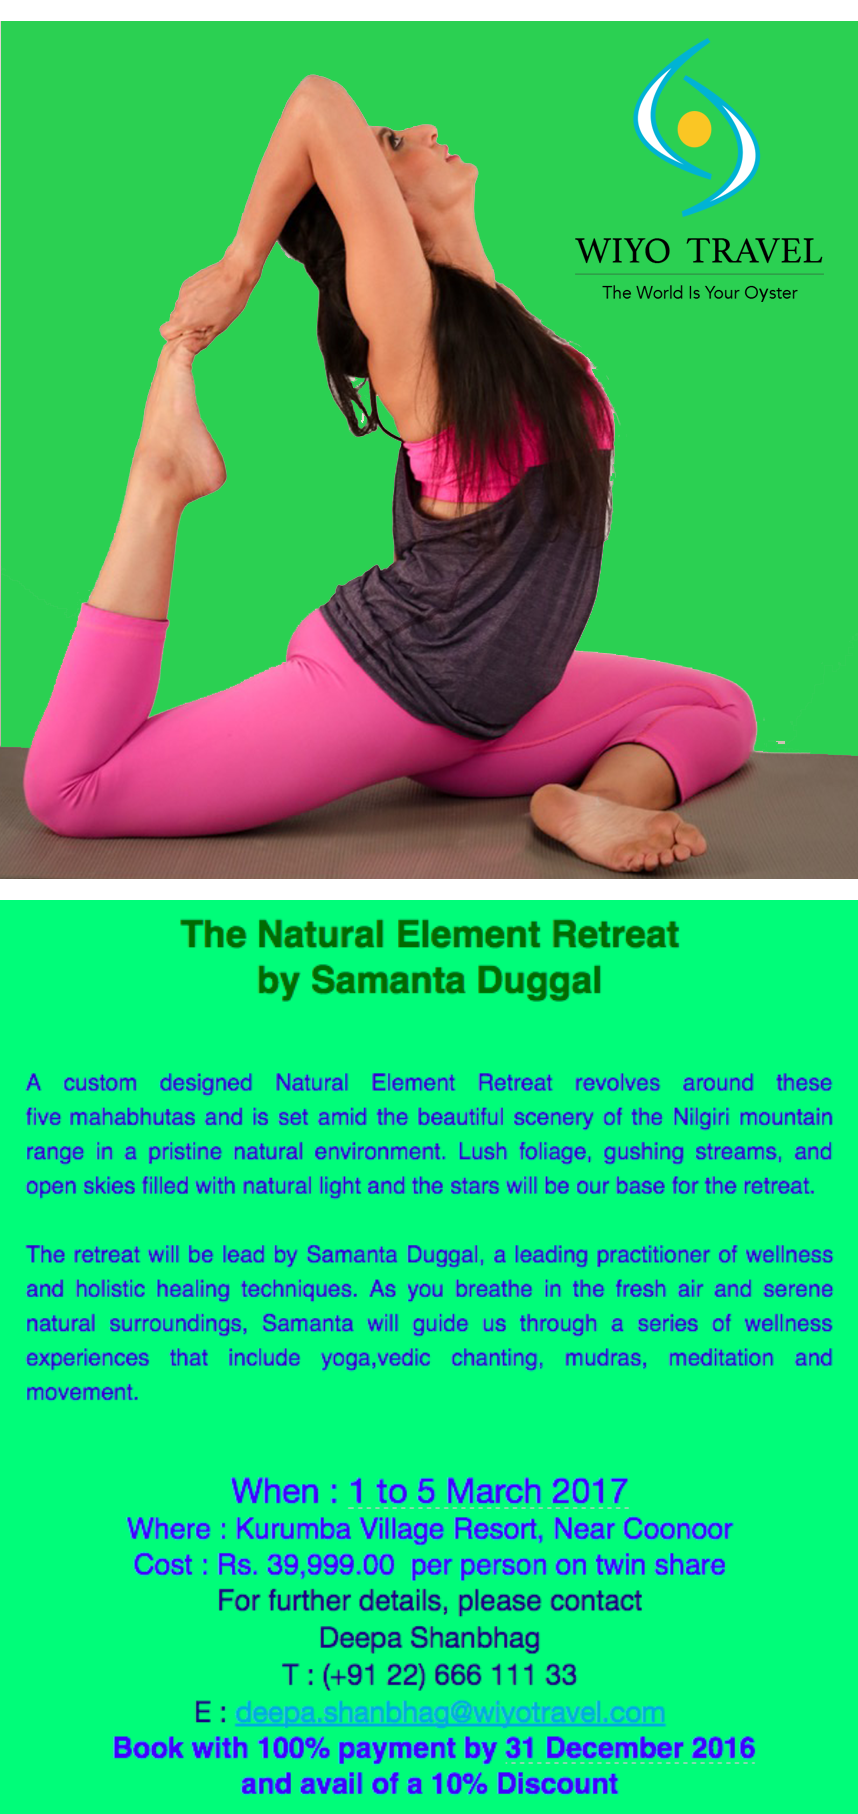 The Natural Element Retreat - View Details